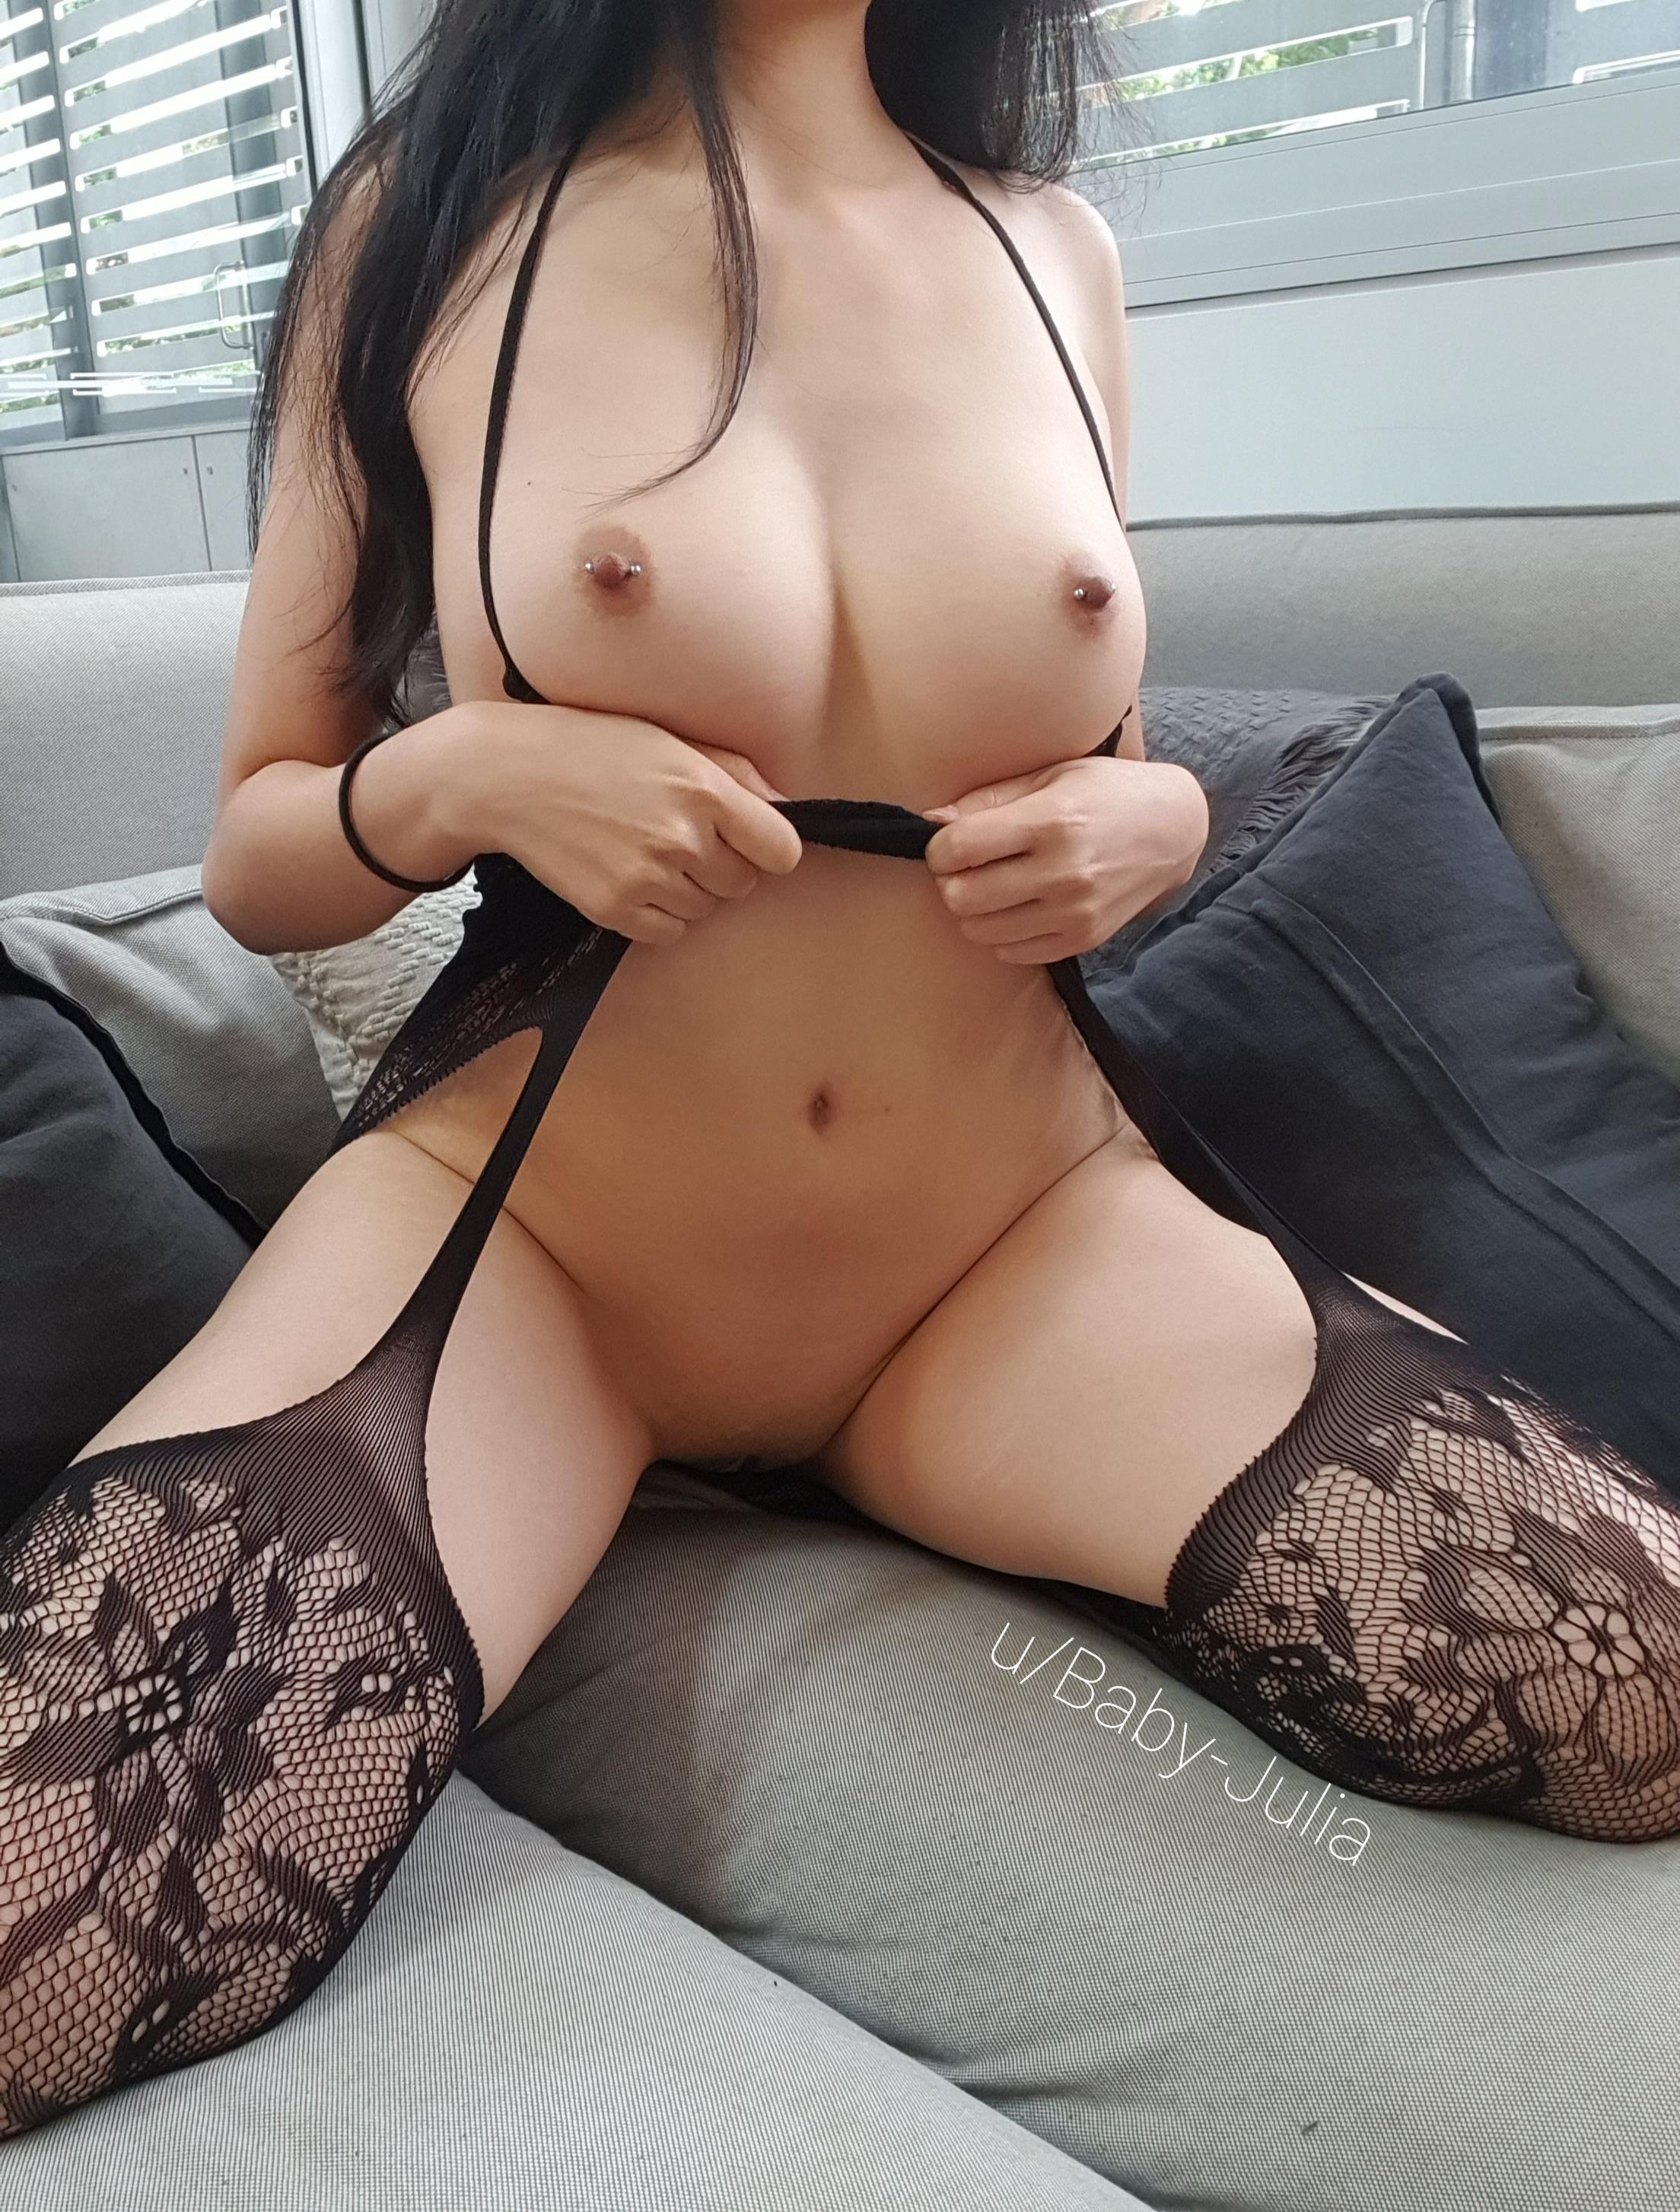 One of our naked asian pics called Am I girlfriend material?